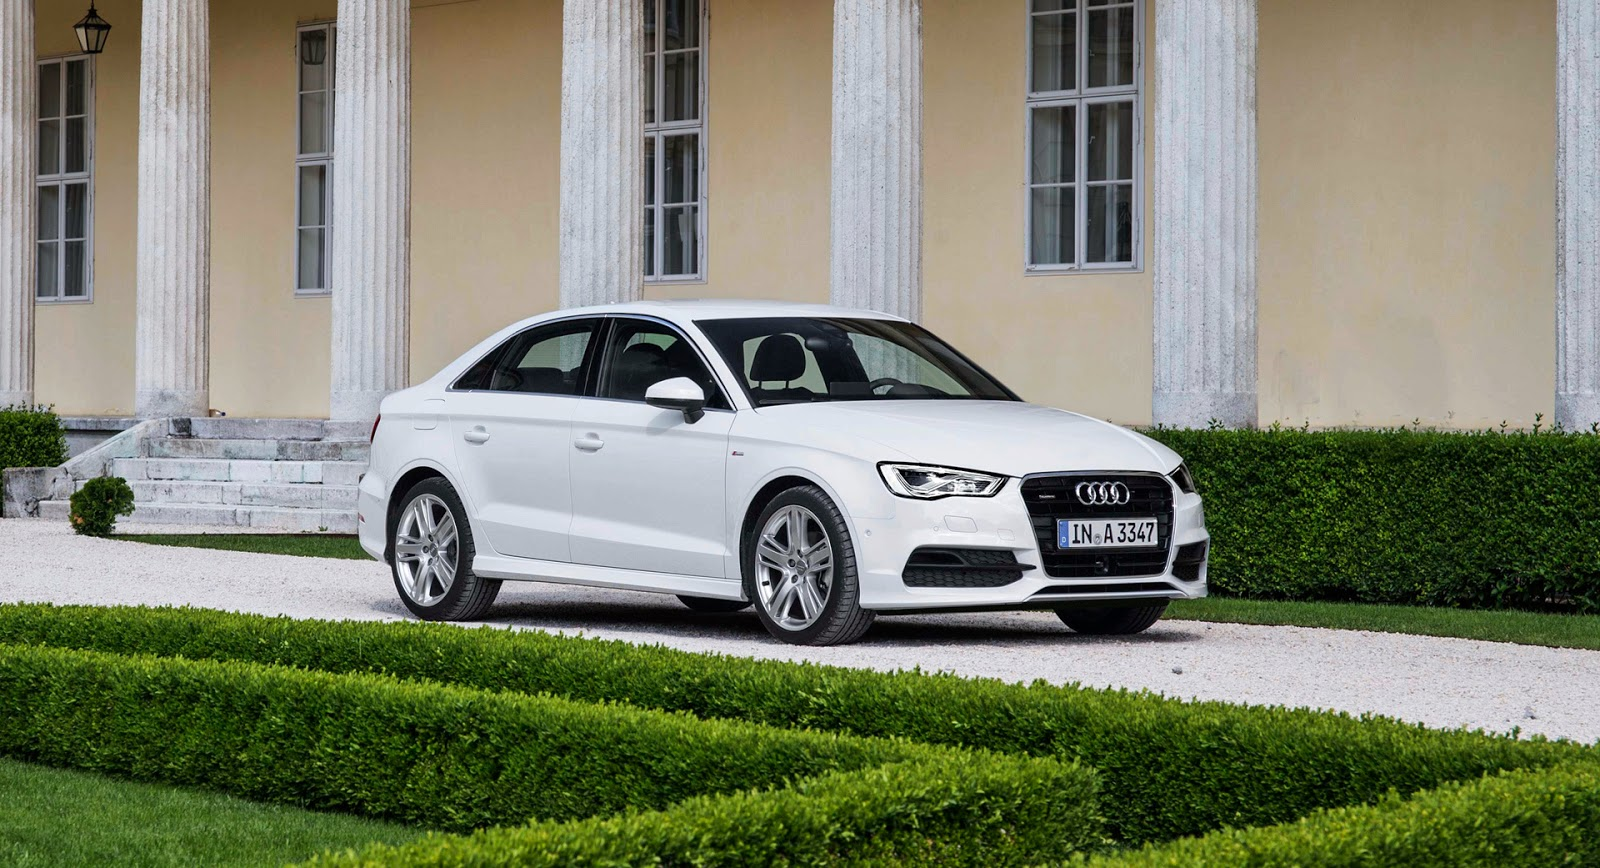 Audi A3 Sedan - High Wheels